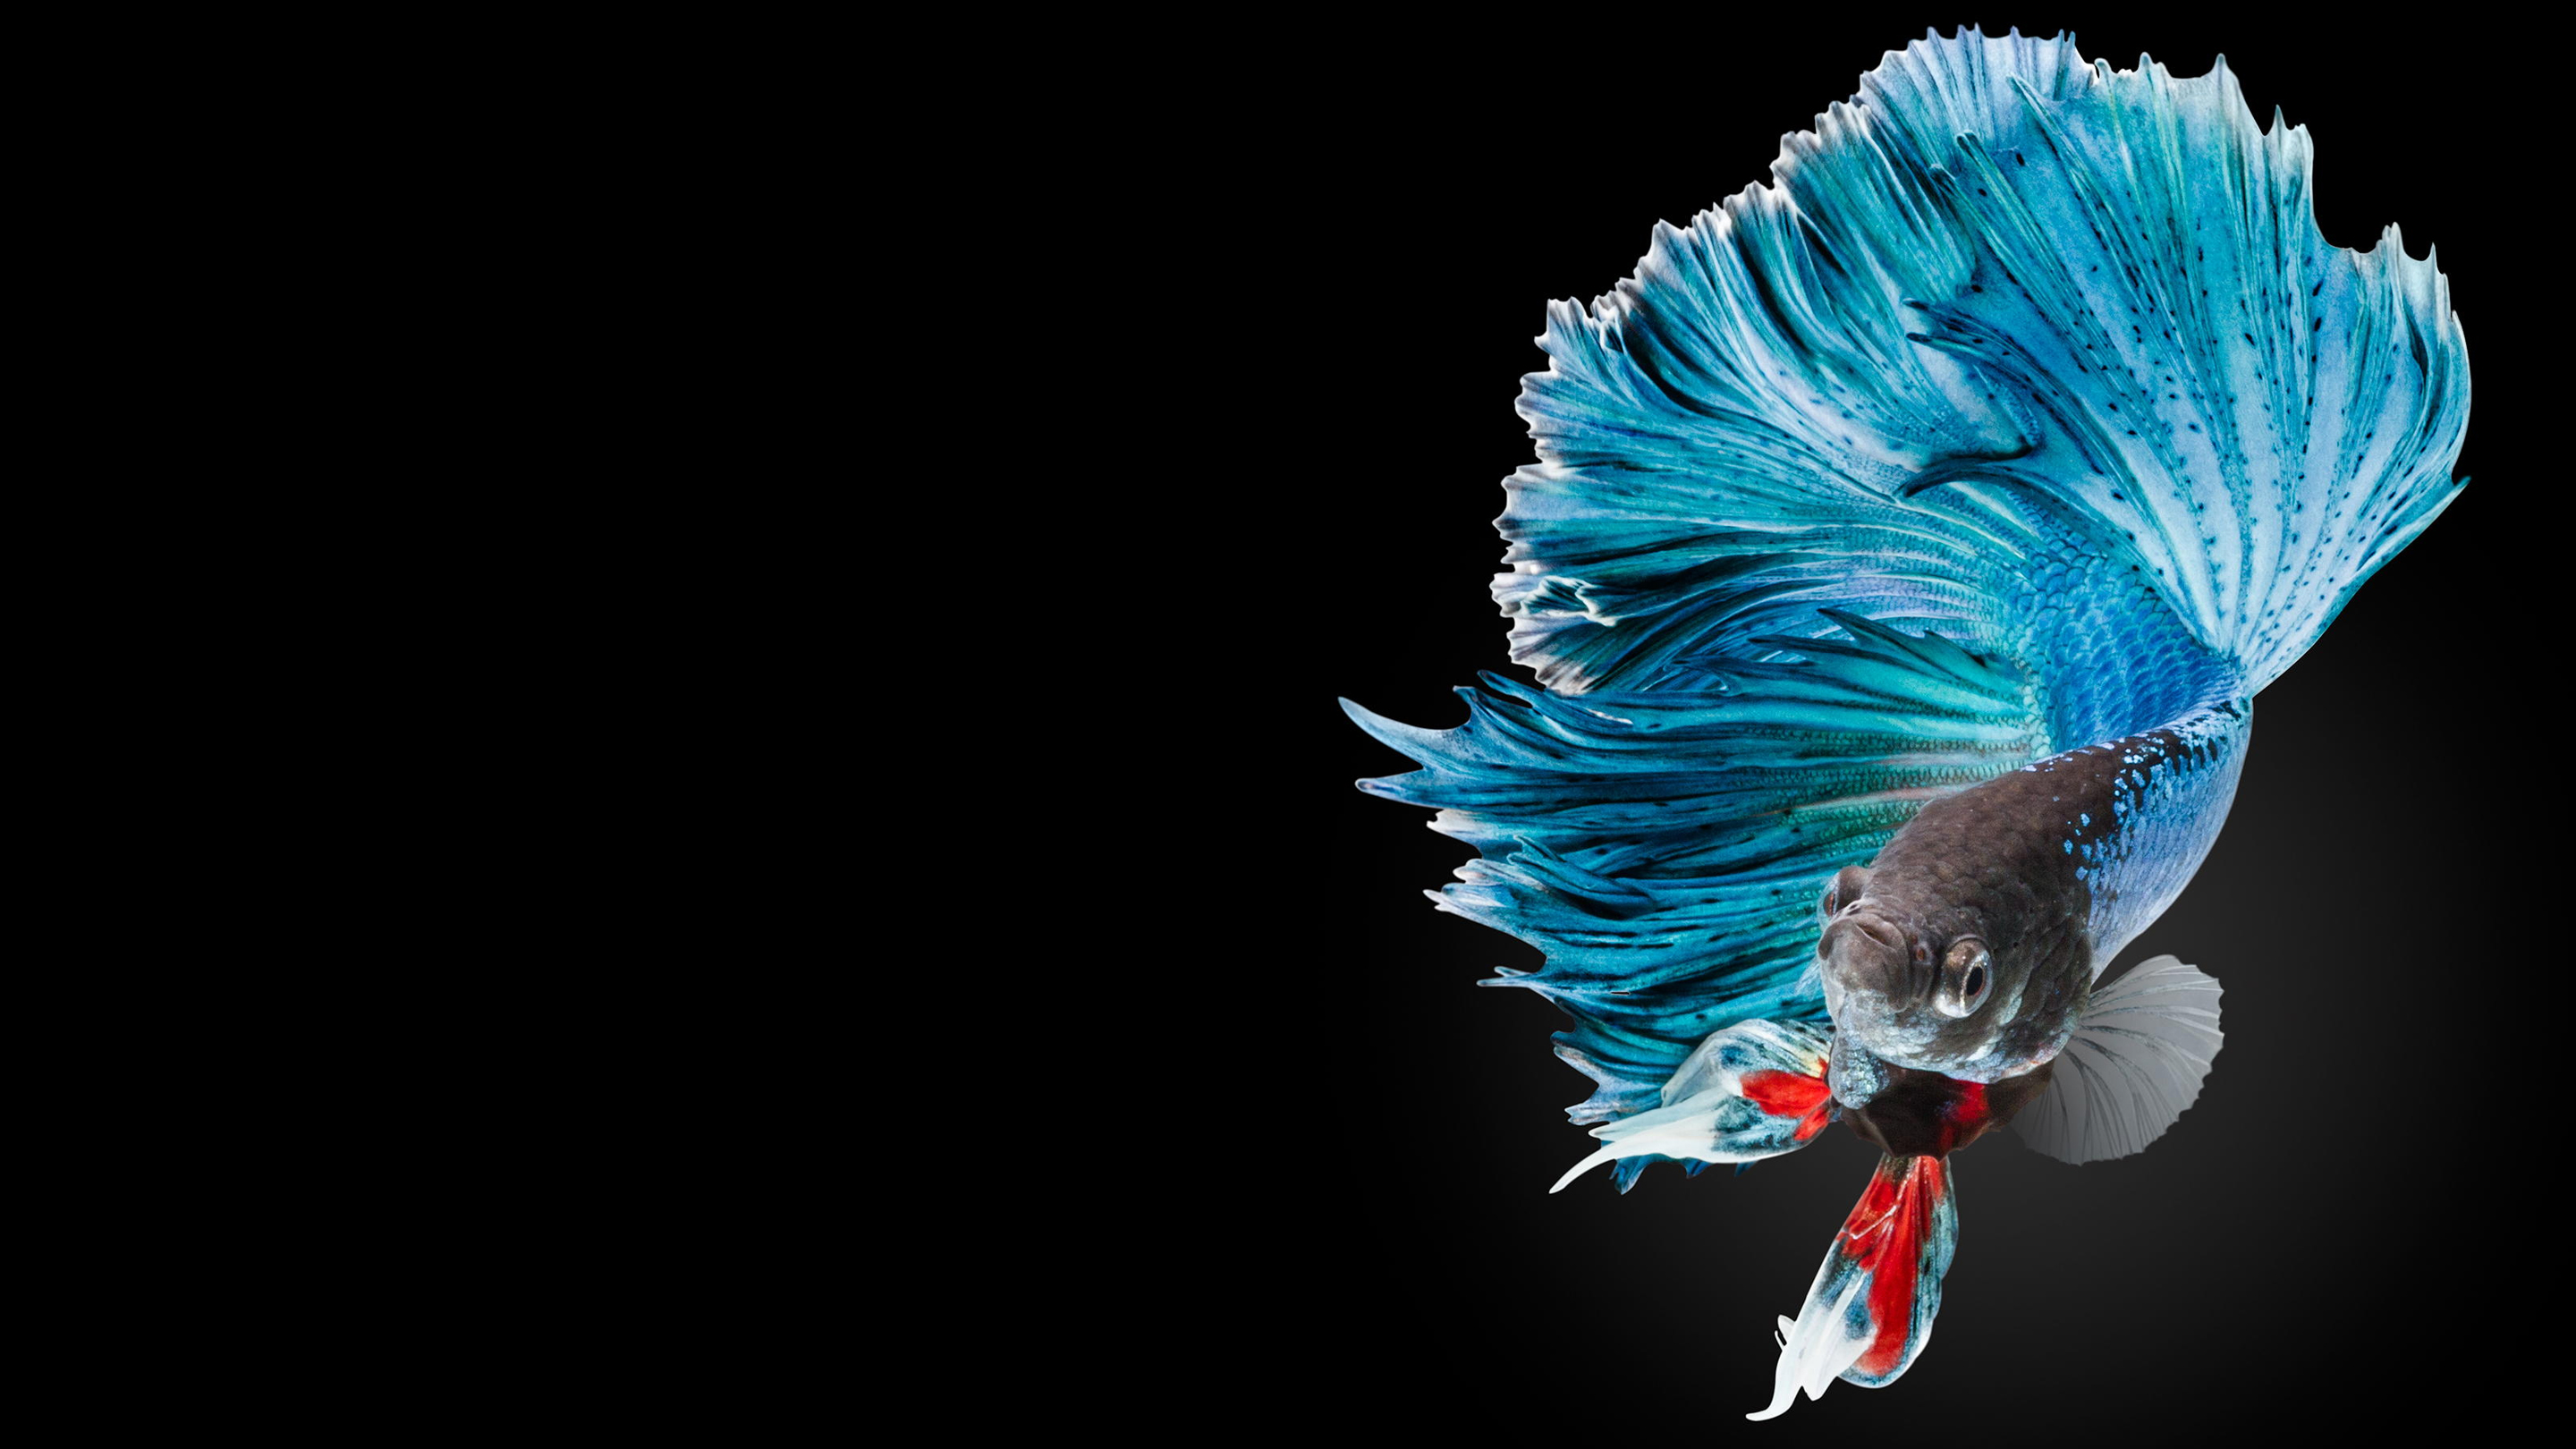 Wallpaper iphone ikan cupang - Apple Iphone 6s Wallpaper With Multicolor Male Betta Fish In Dark